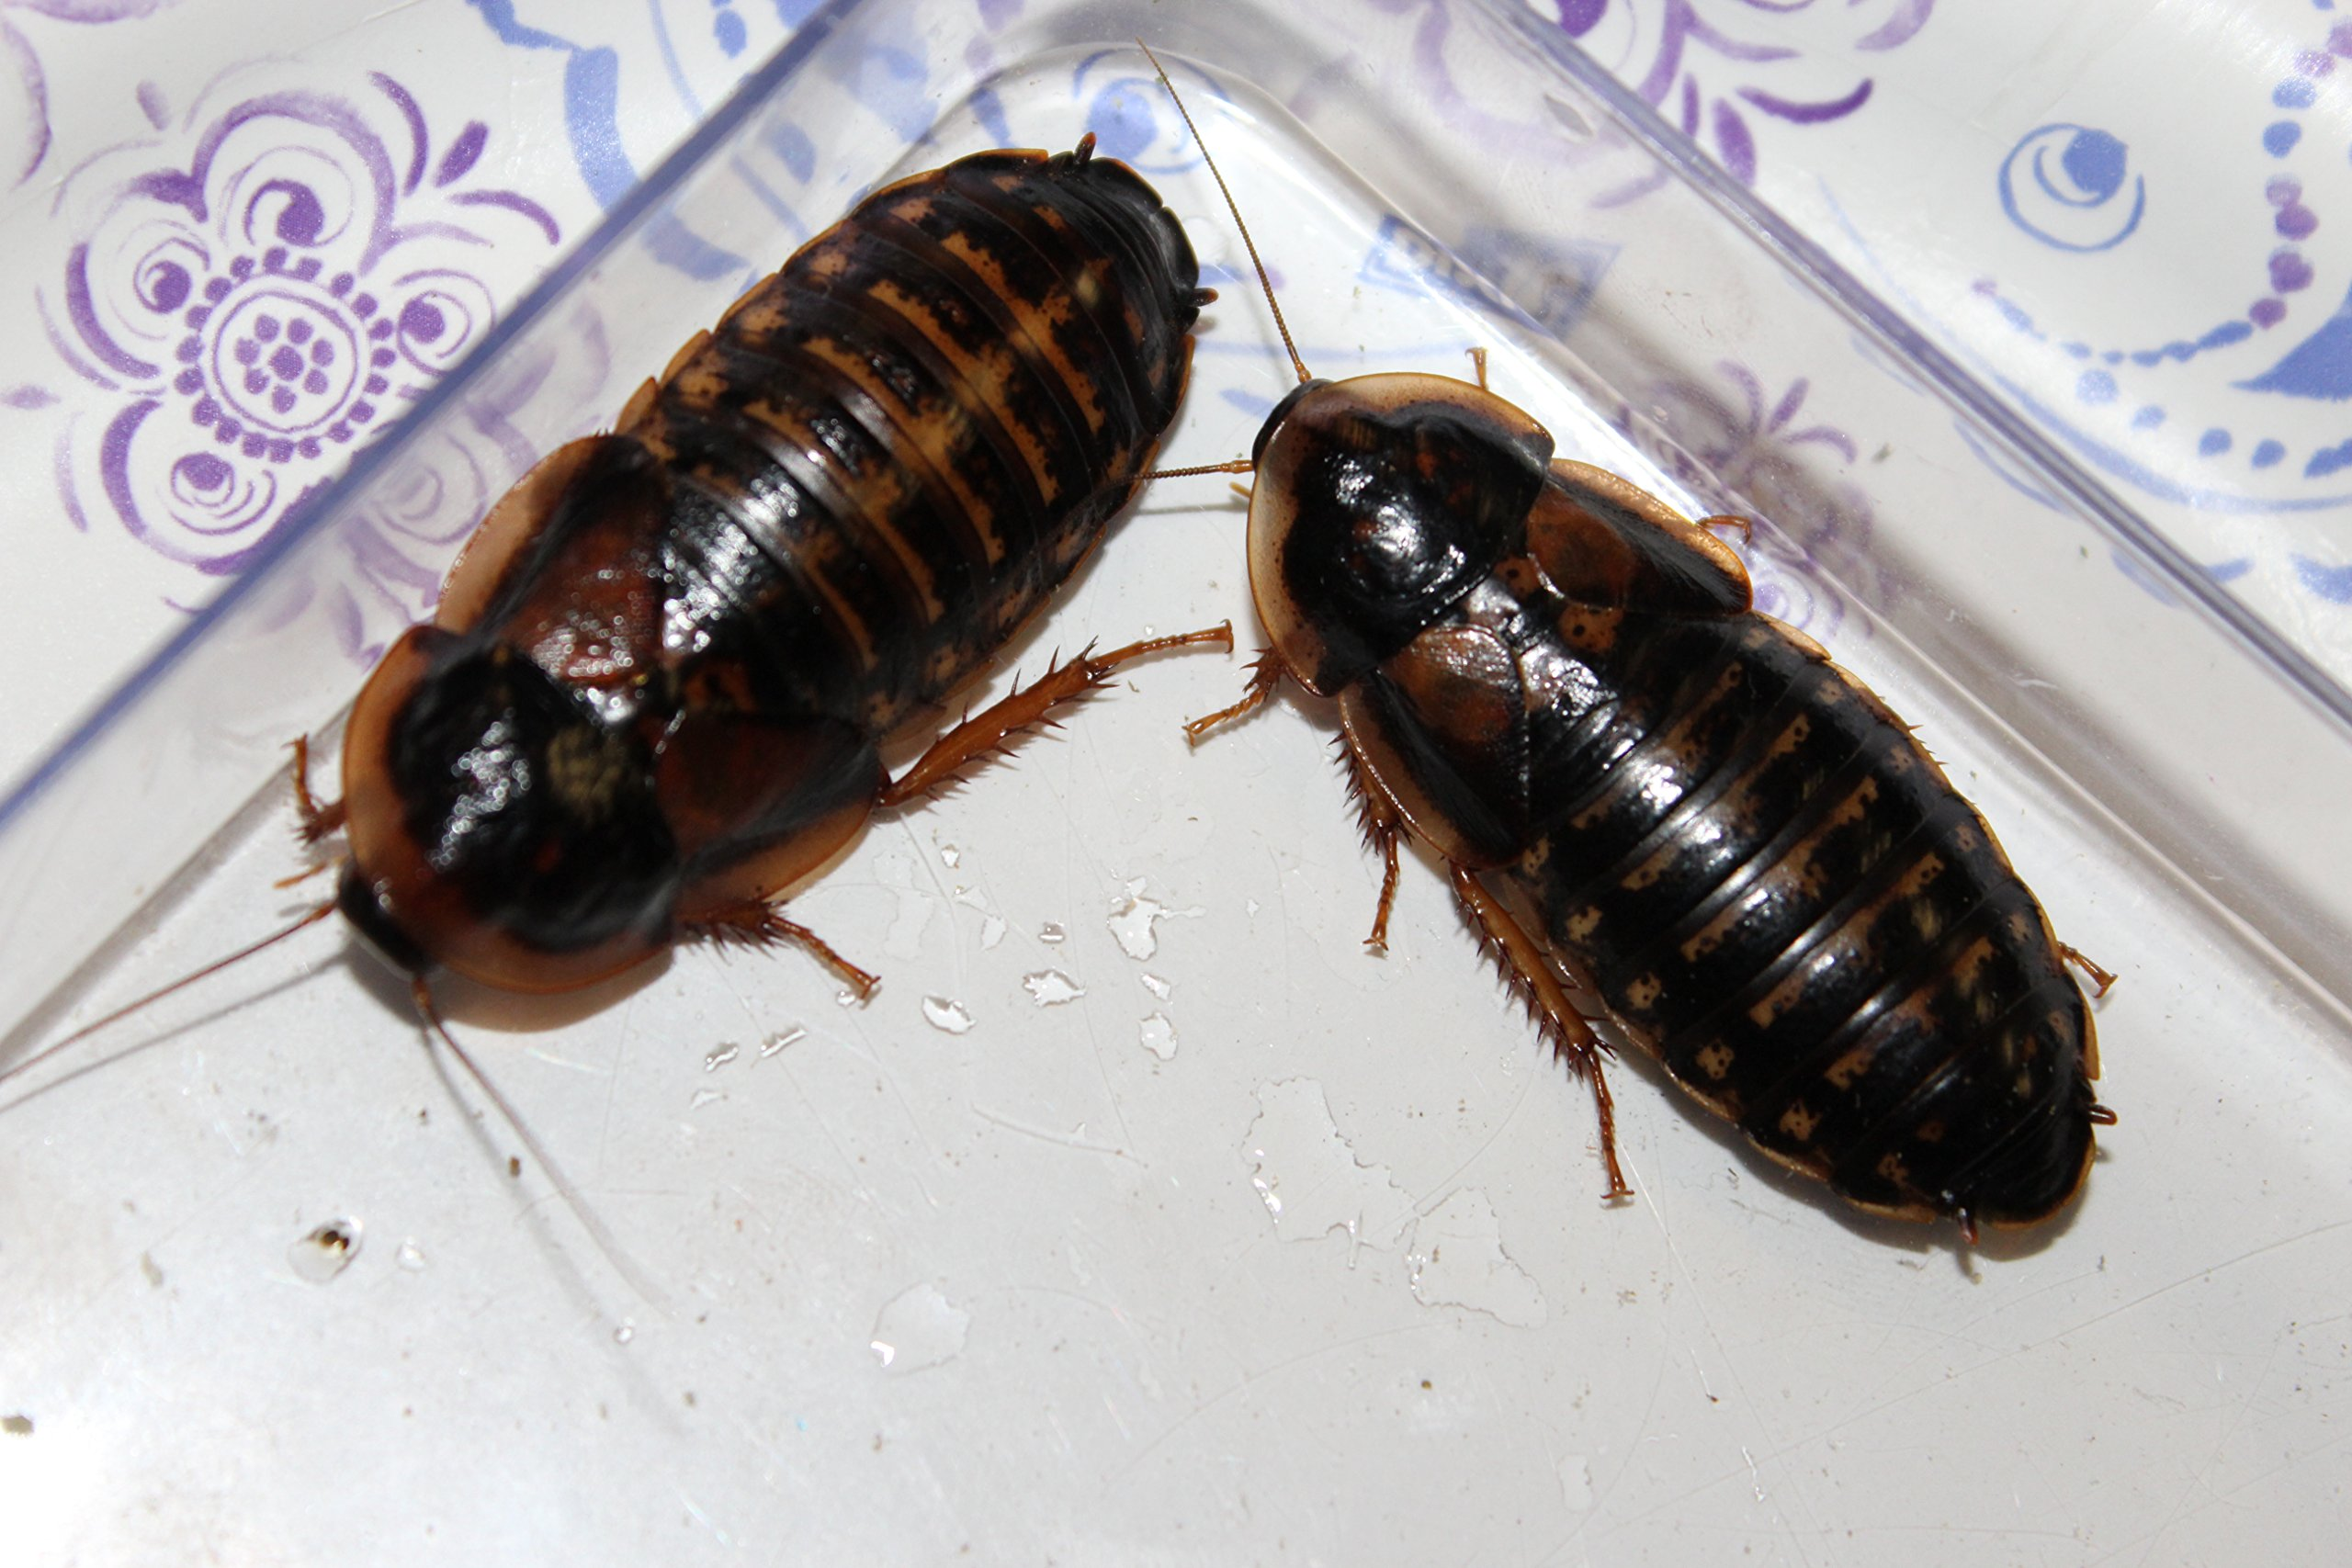 Adult Dubia Roaches 40 Females & 20 Males